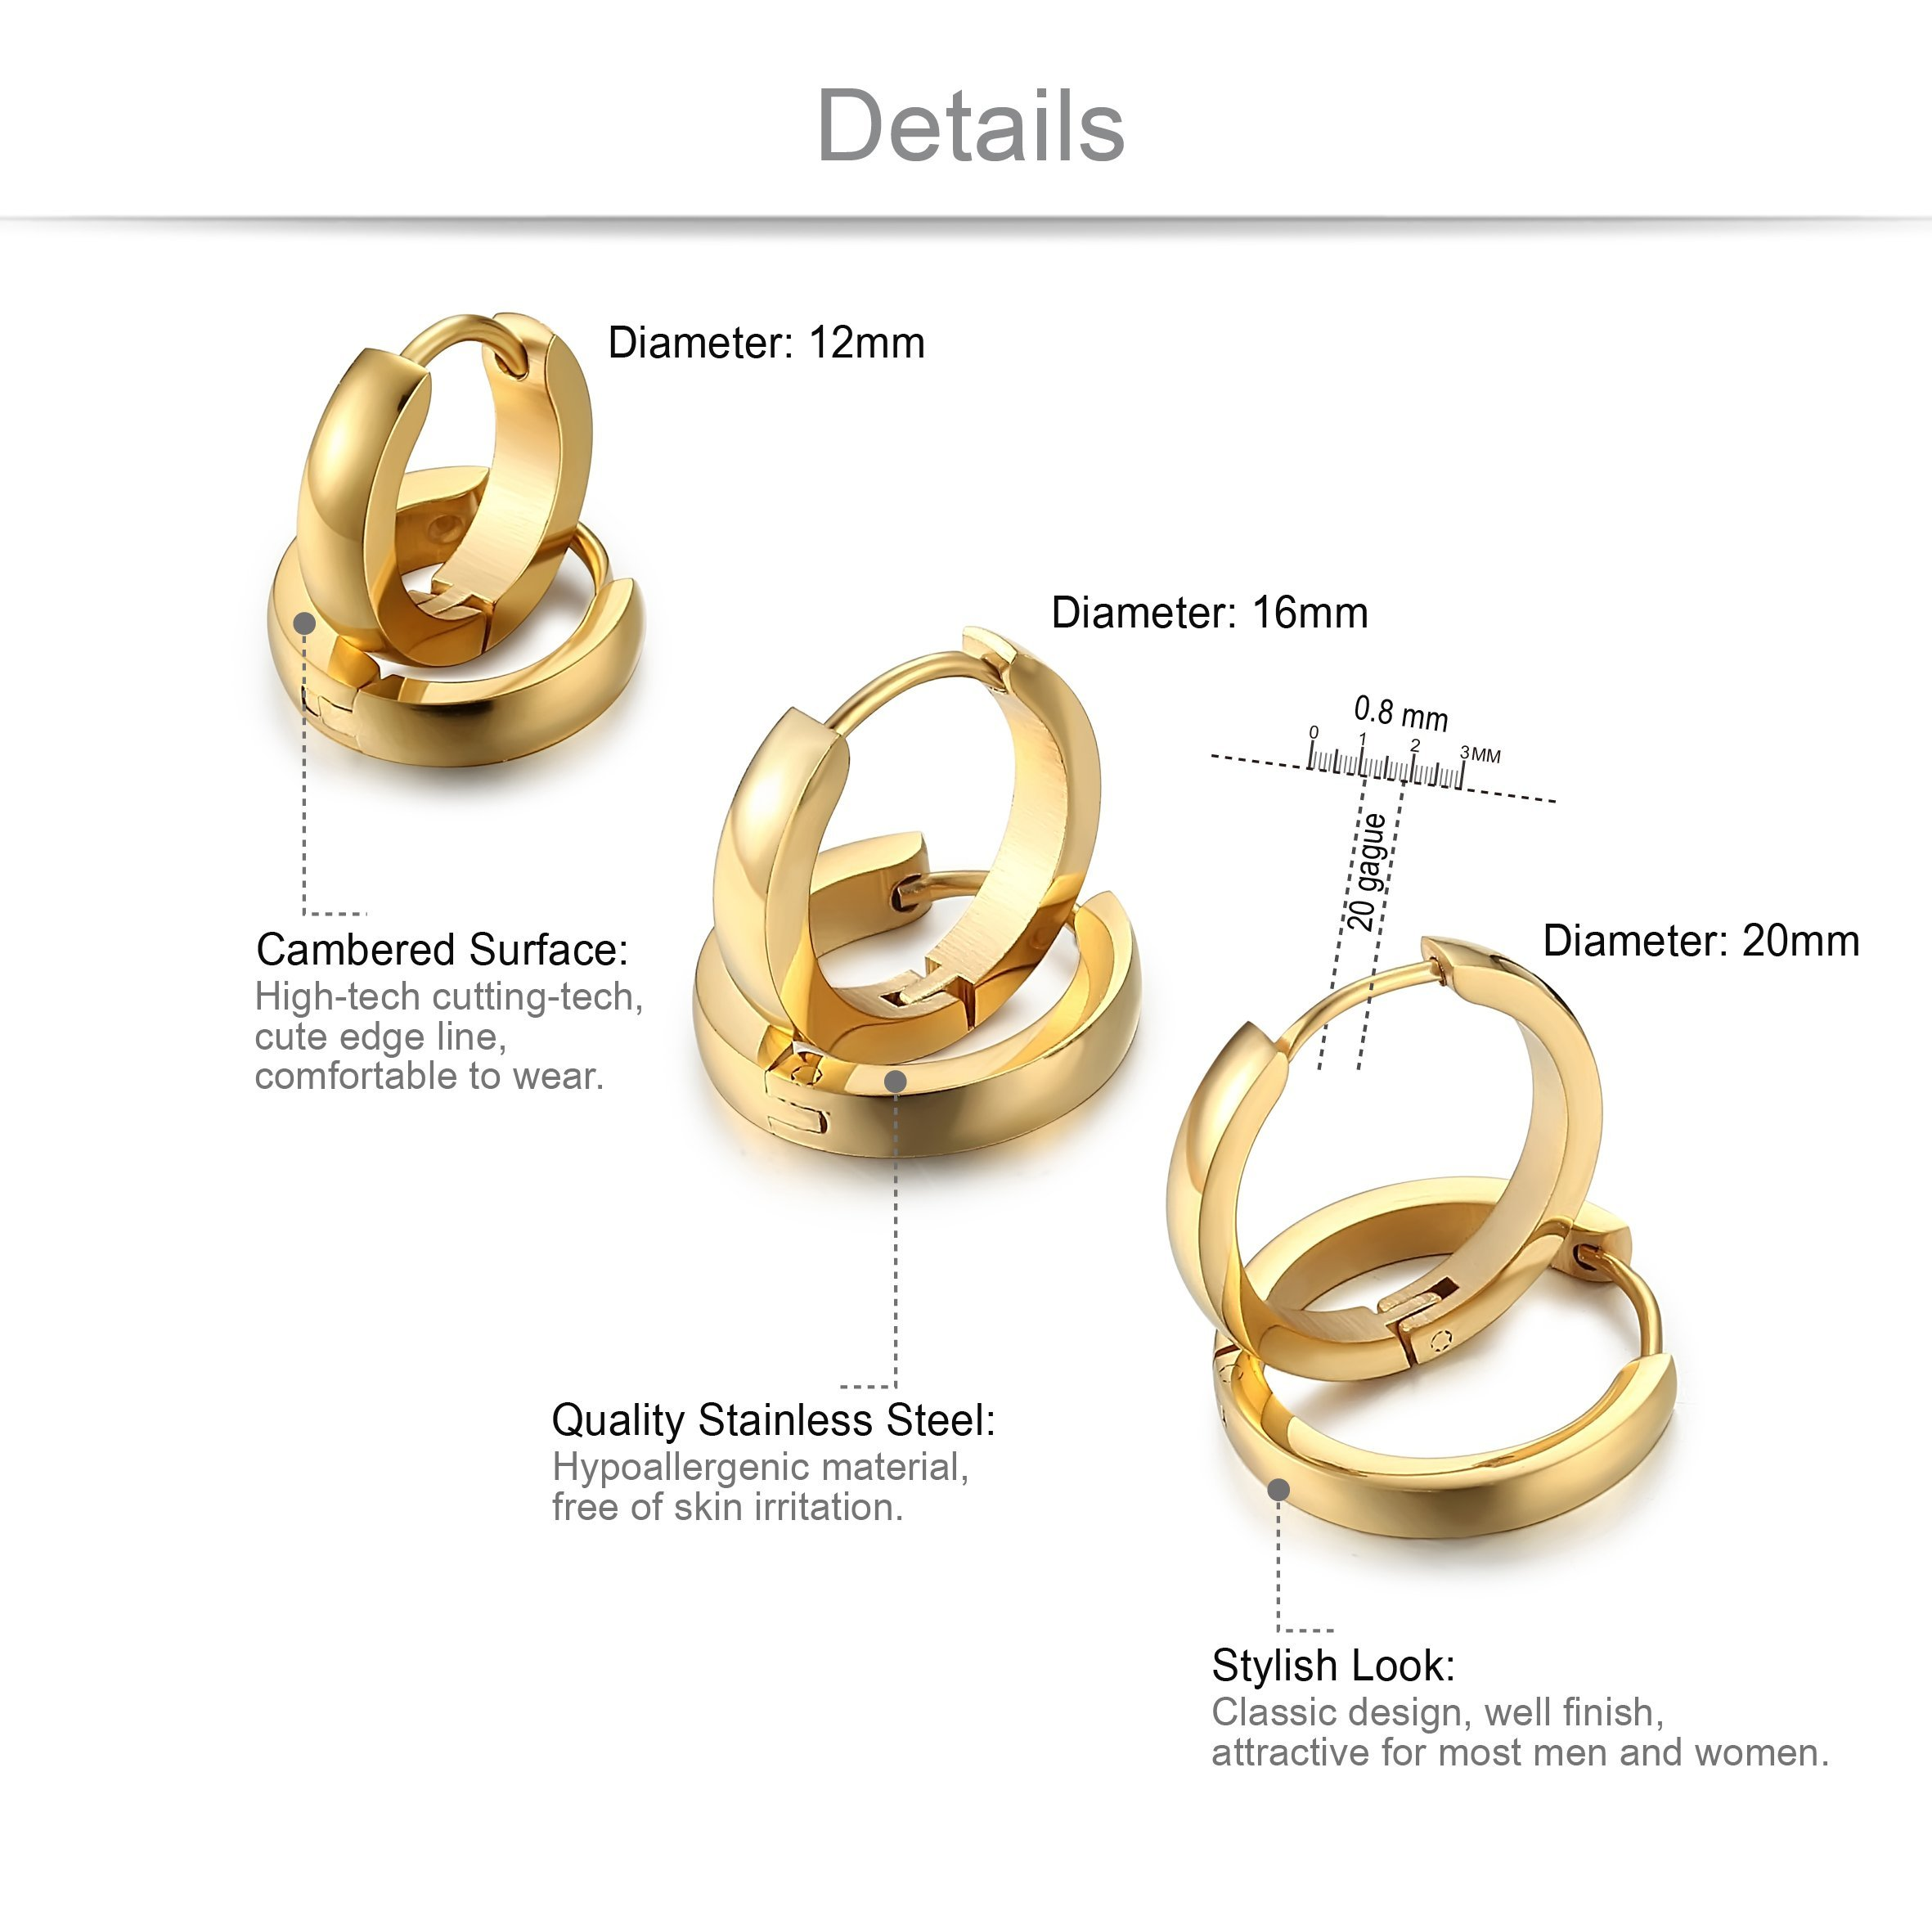 Jstyle Stainless Steel Mens Womens Hoop Earrings Huggie Ear Piercings G by Jstyle (Image #2)